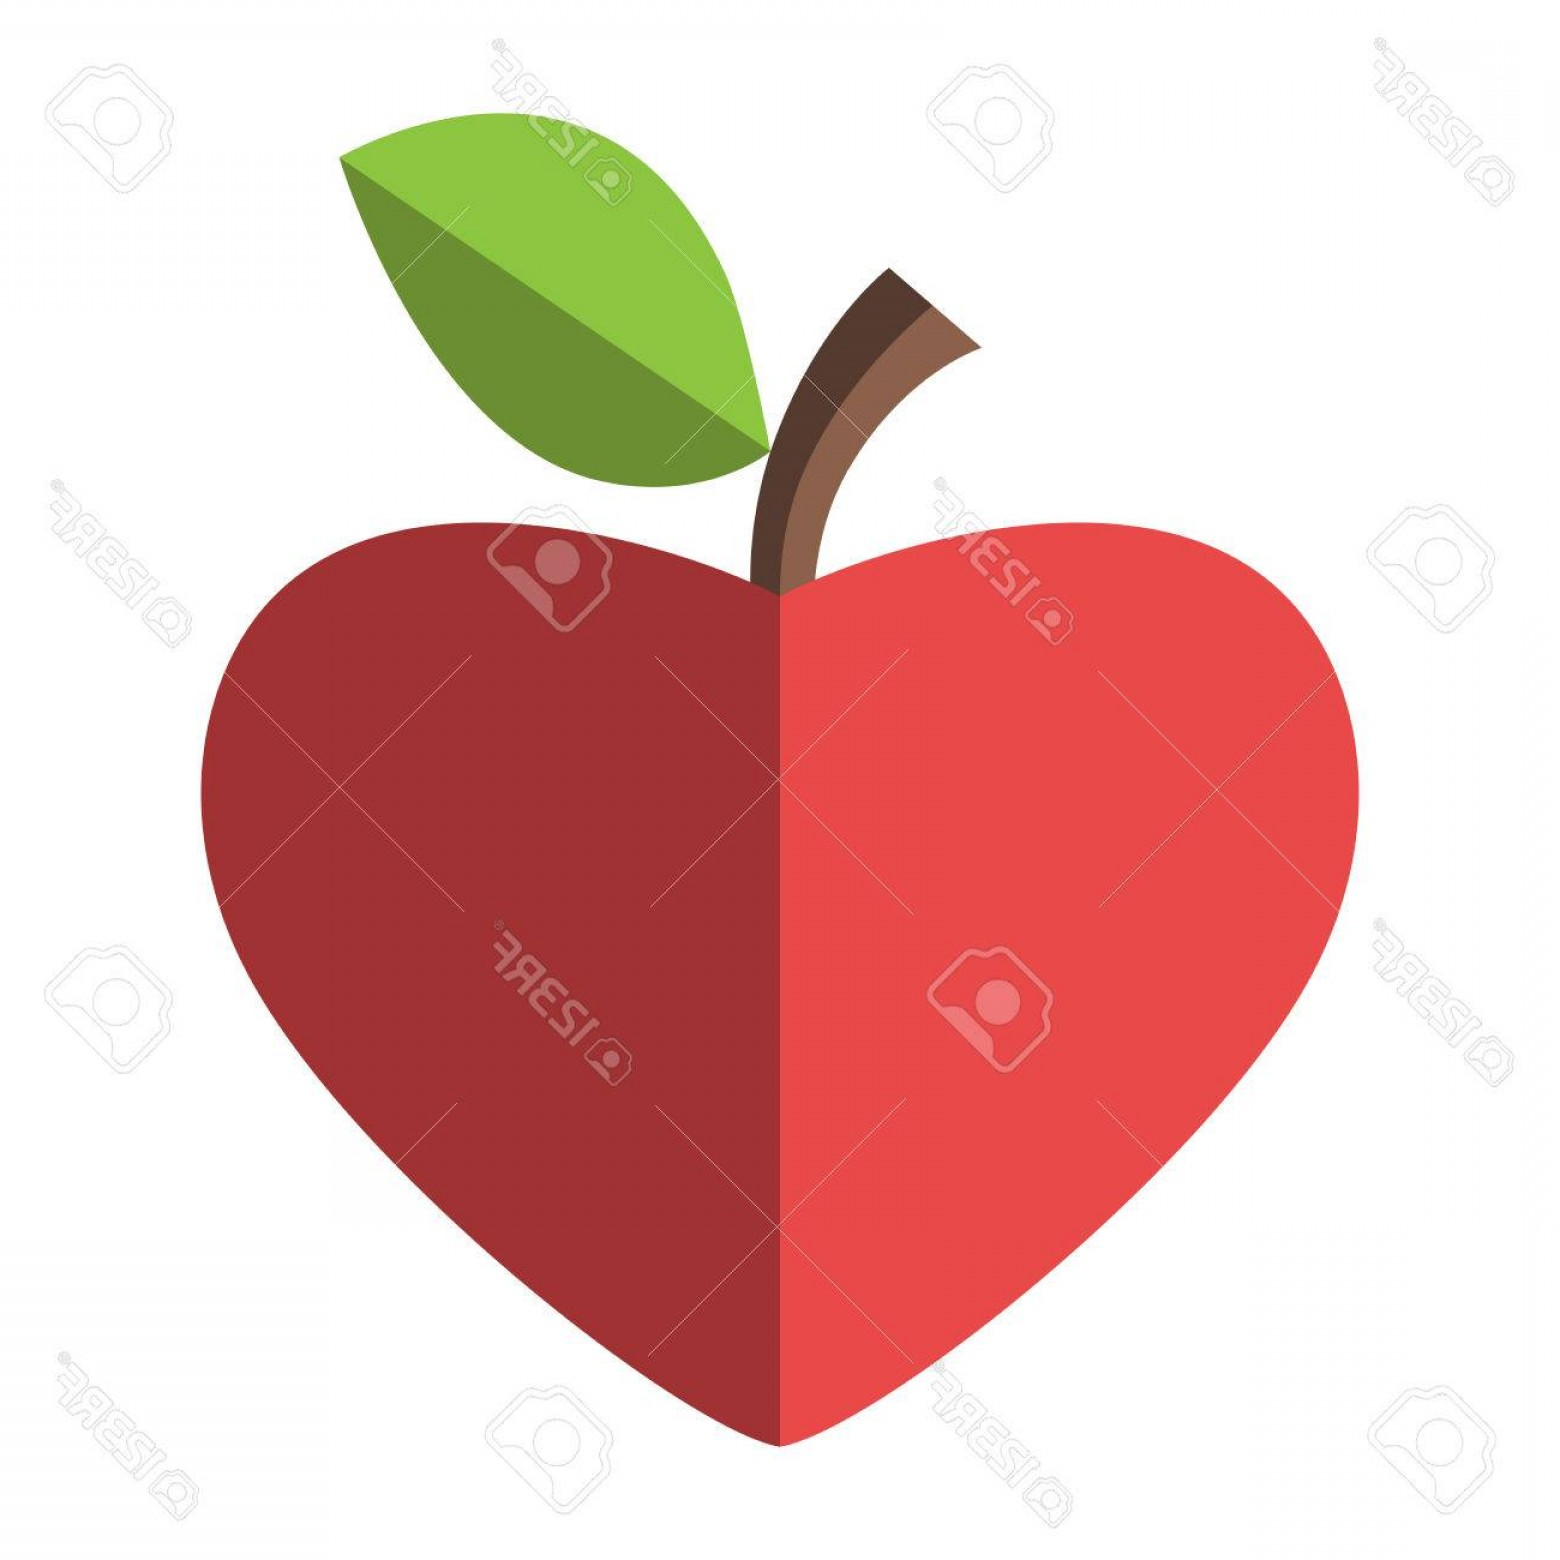 Red Apple Vector Logo: Photostock Vector Heart Shaped Red Apple Health Healthy Eating Fruit And Love Concept